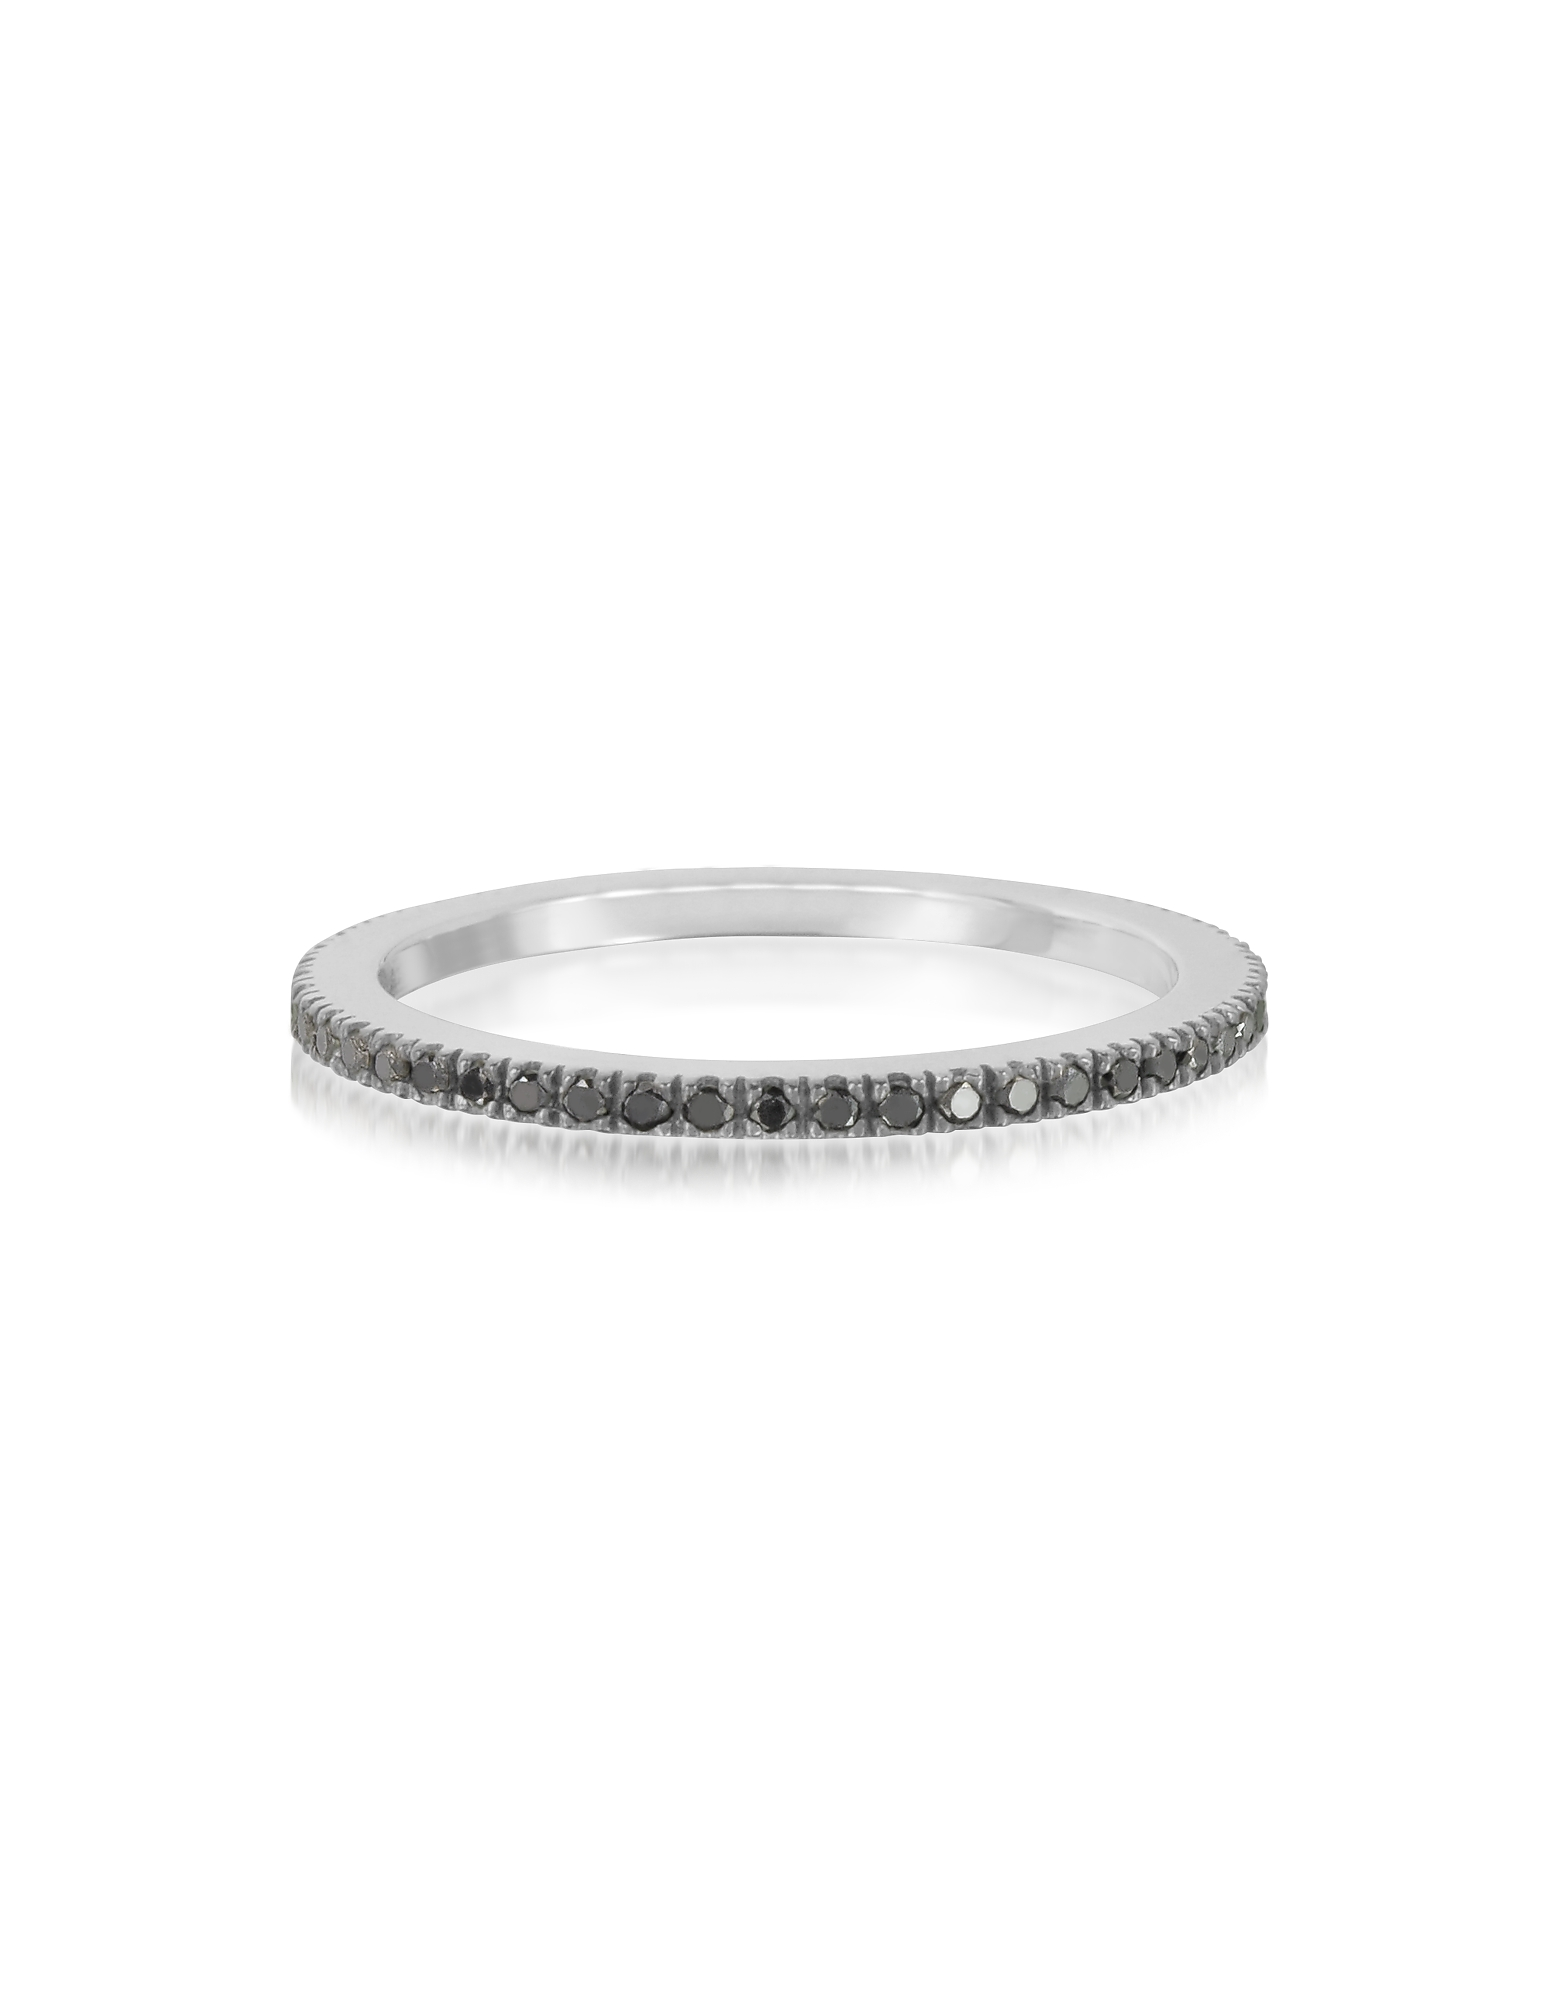 Forzieri Rings, Black Diamond Eternity Band Ring